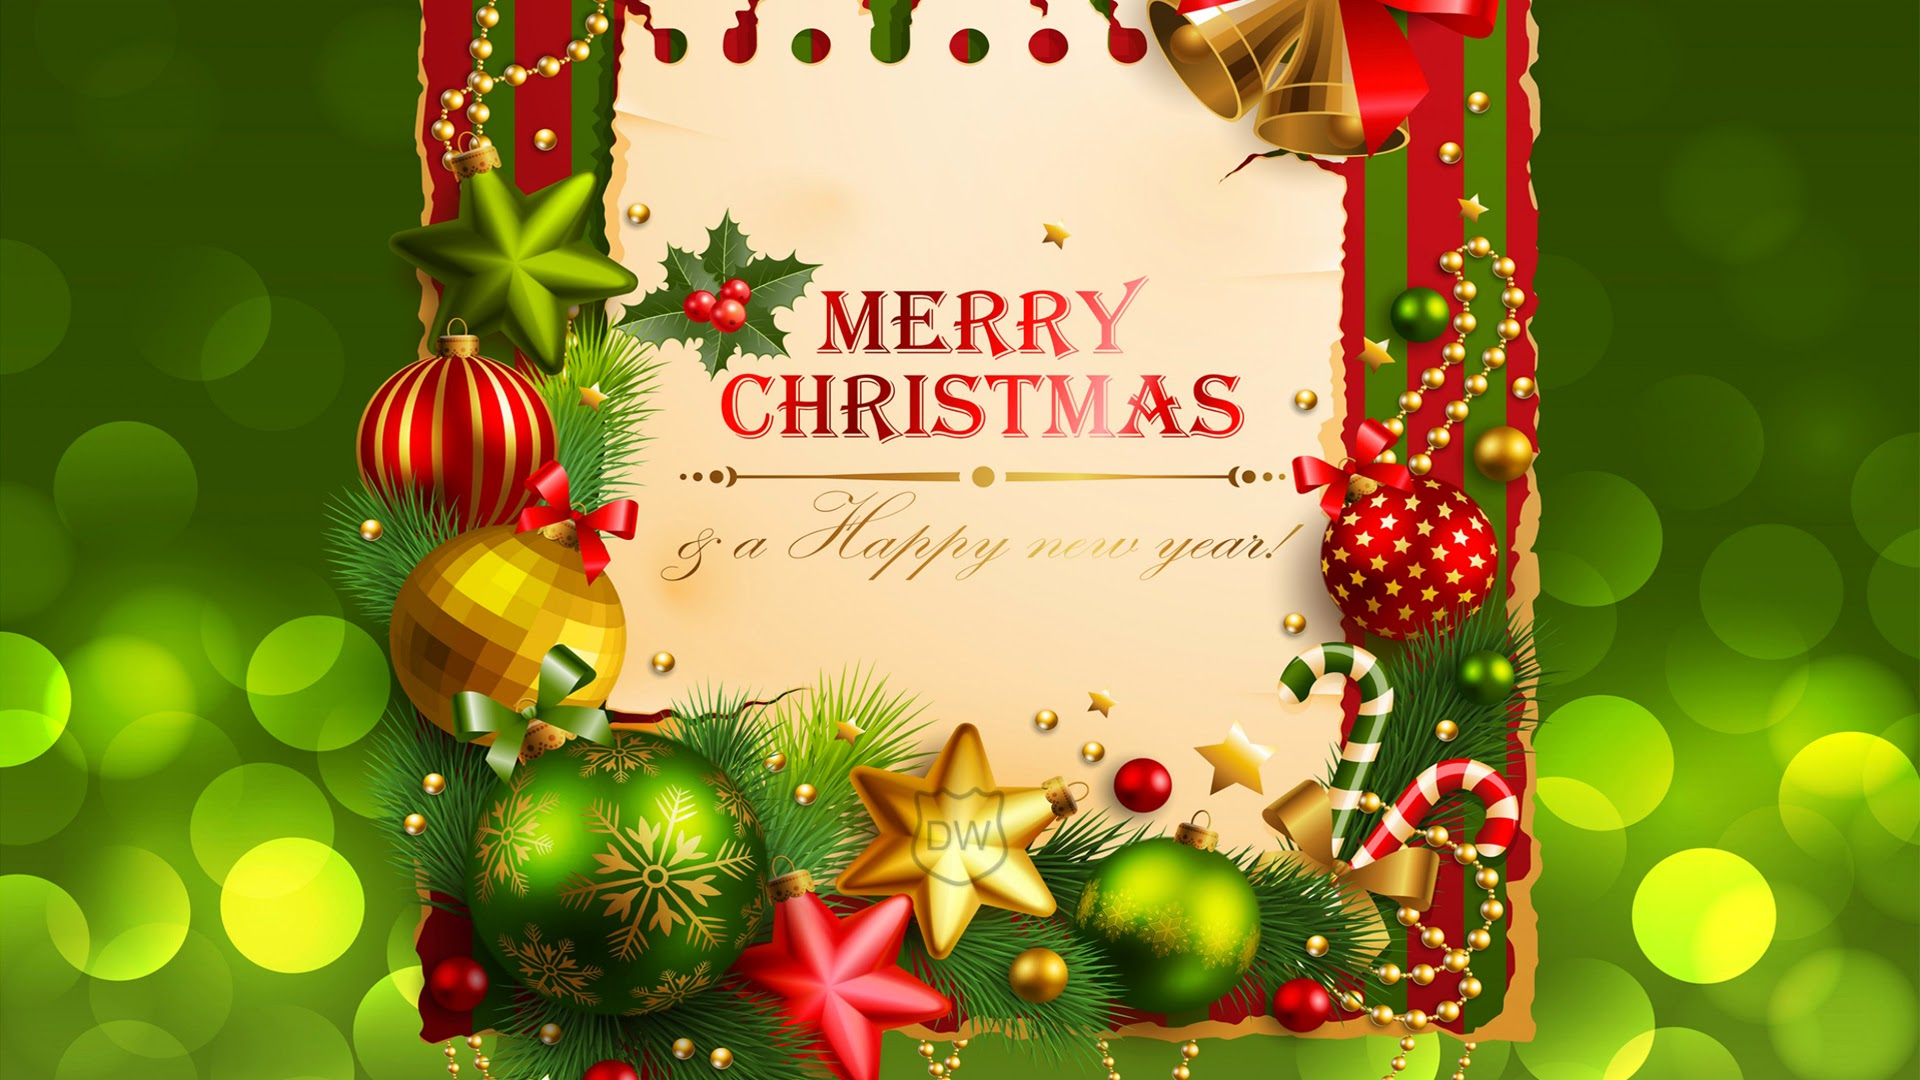 Free Merry Christmas Images Photos Wallpapers Pics For FB